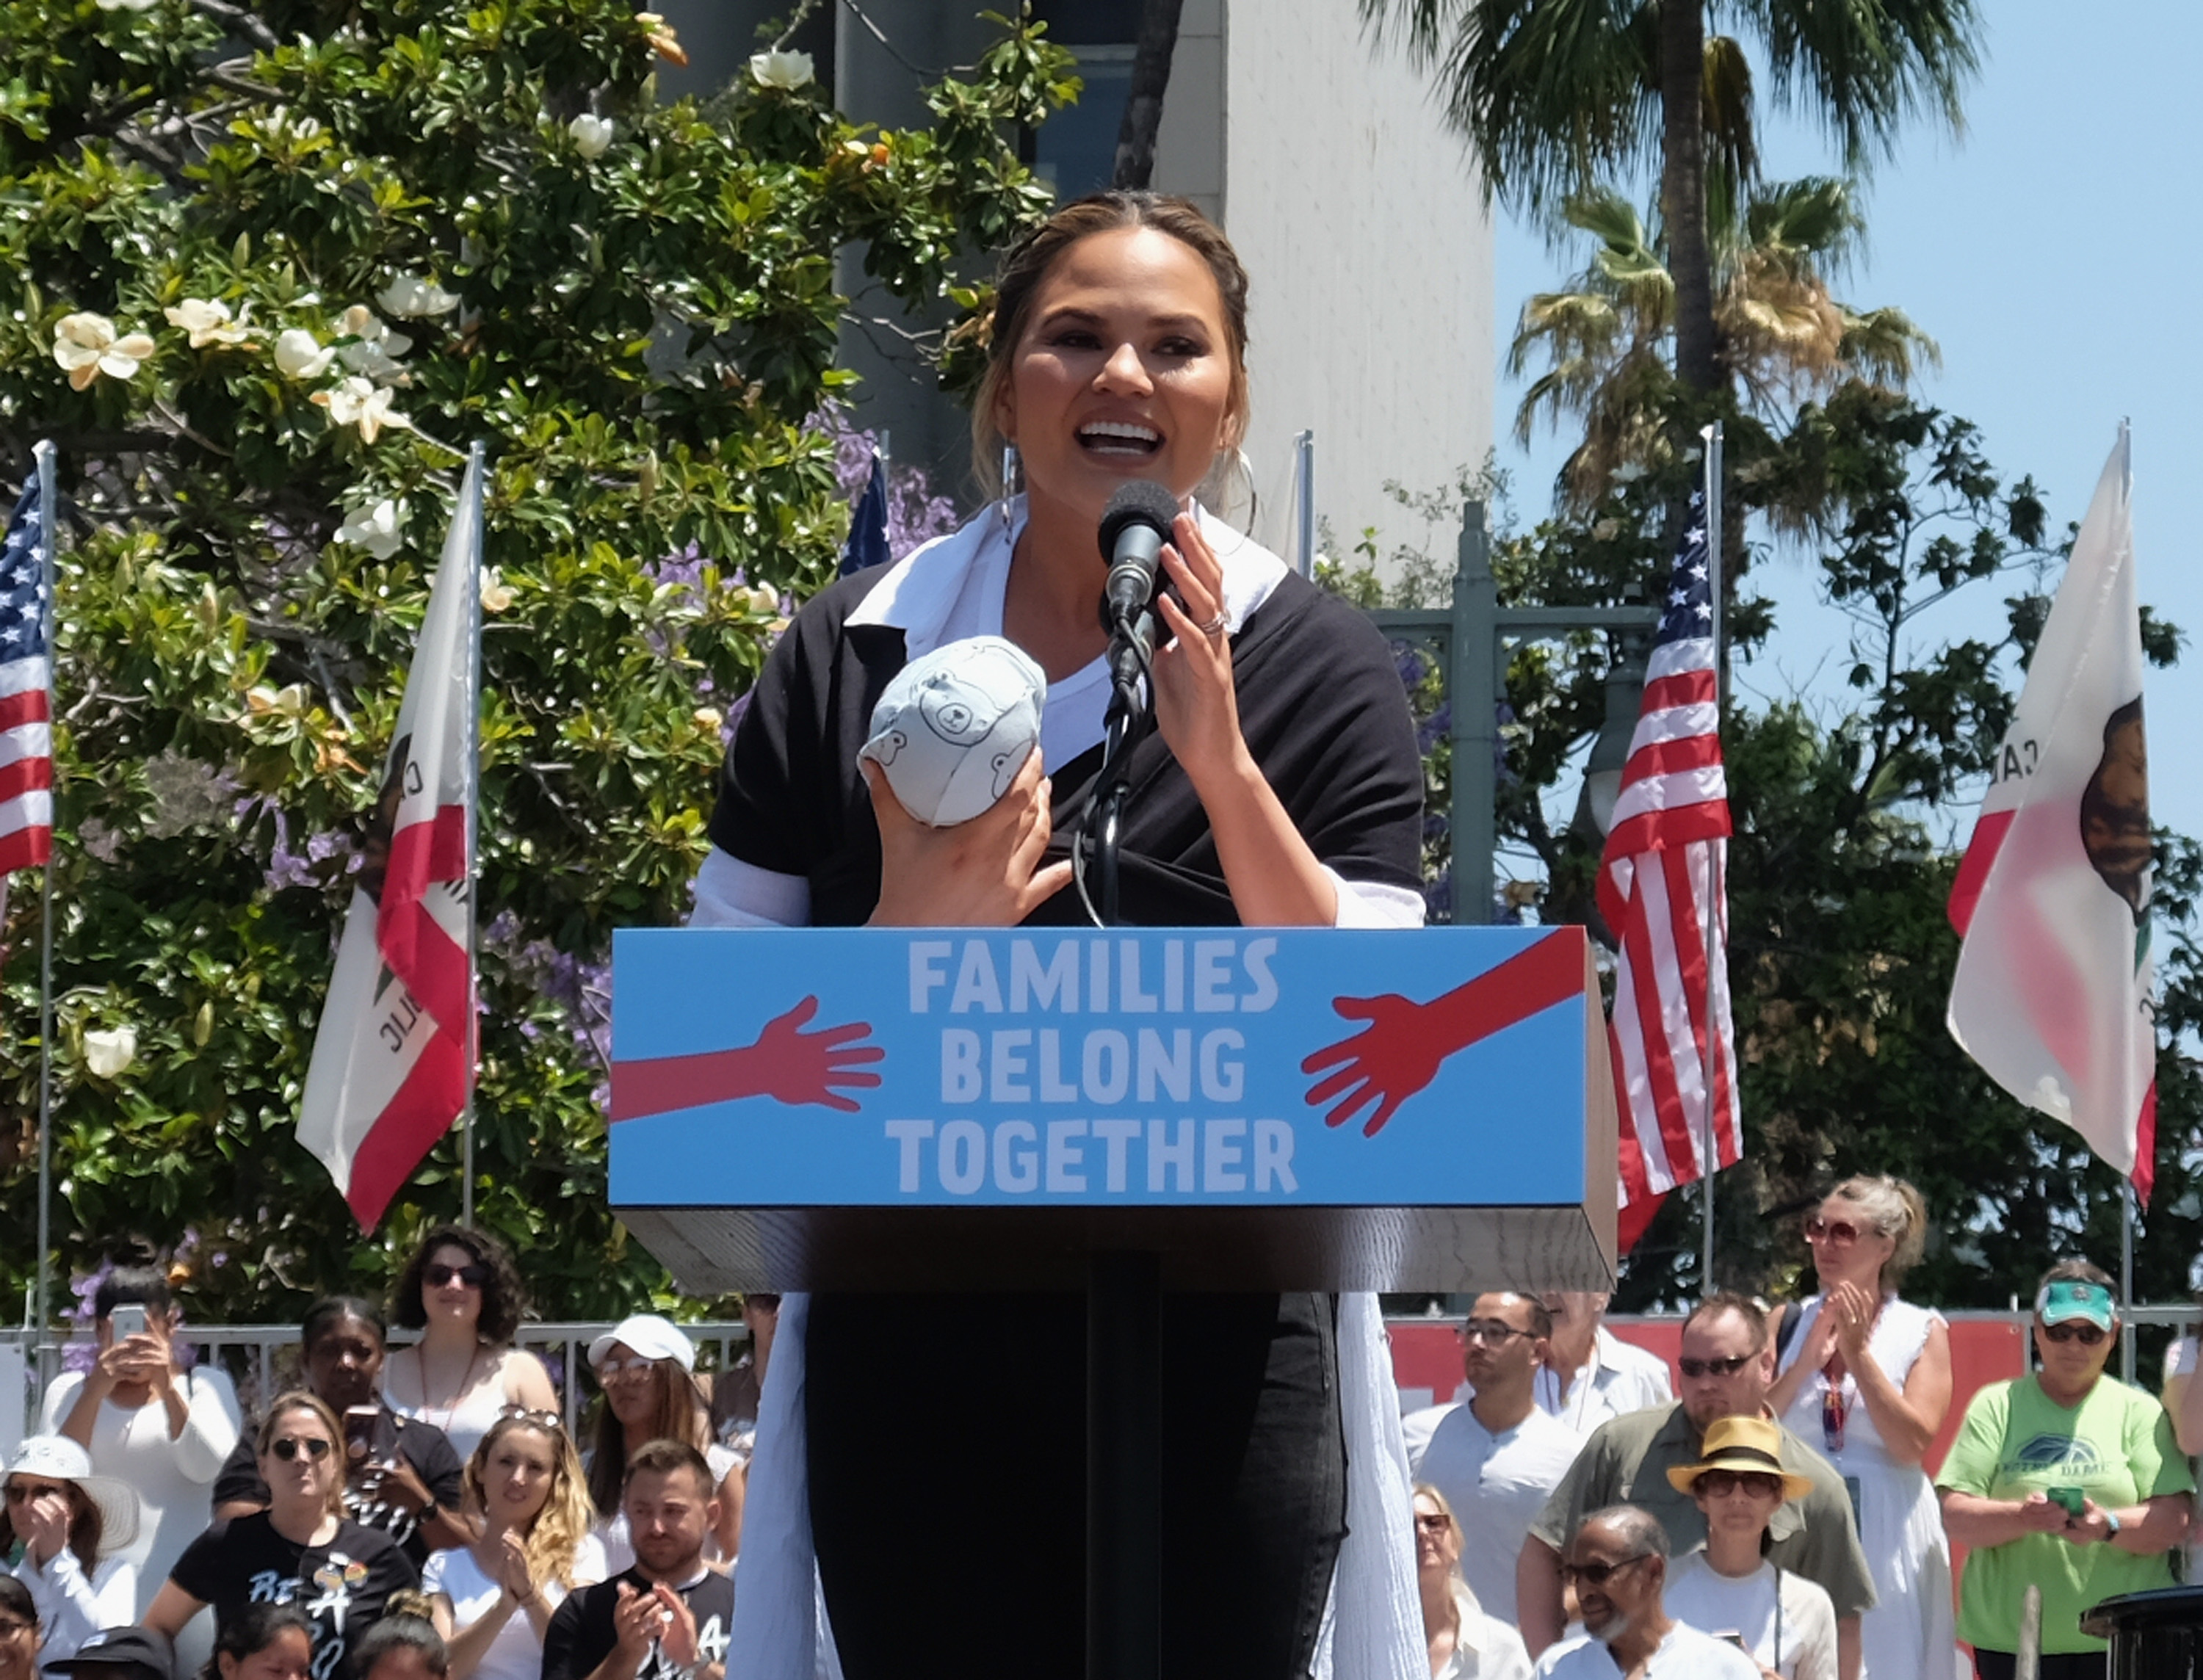 LOS ANGELES, CA - JUNE 30:  Chrissy Teigen speaks at the Families Belong Together - Freedom For Immigrants March at Los Angeles City Hall on June 30, 2018 in Los Angeles, California.  (Photo by Sarah Morris/Getty Images)